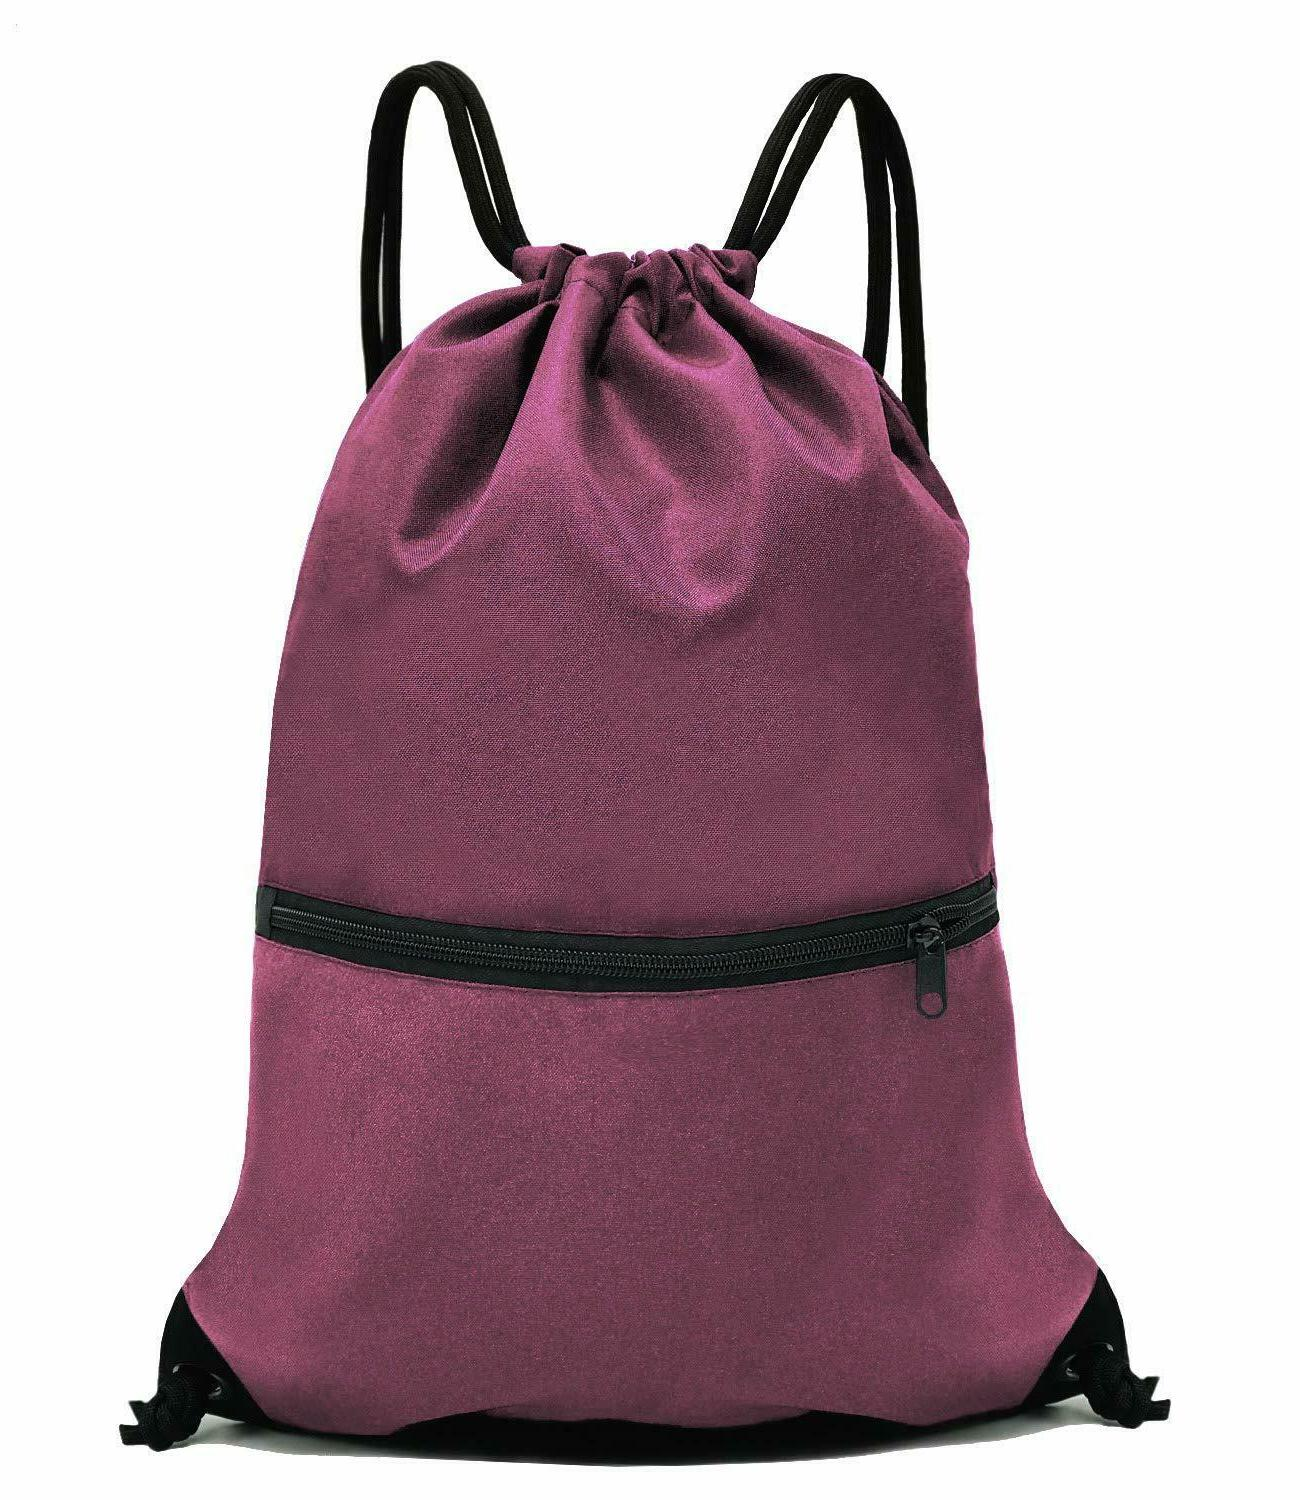 HOLYLUCK Drawstring Backpack Bag Sport Gym Sackpack